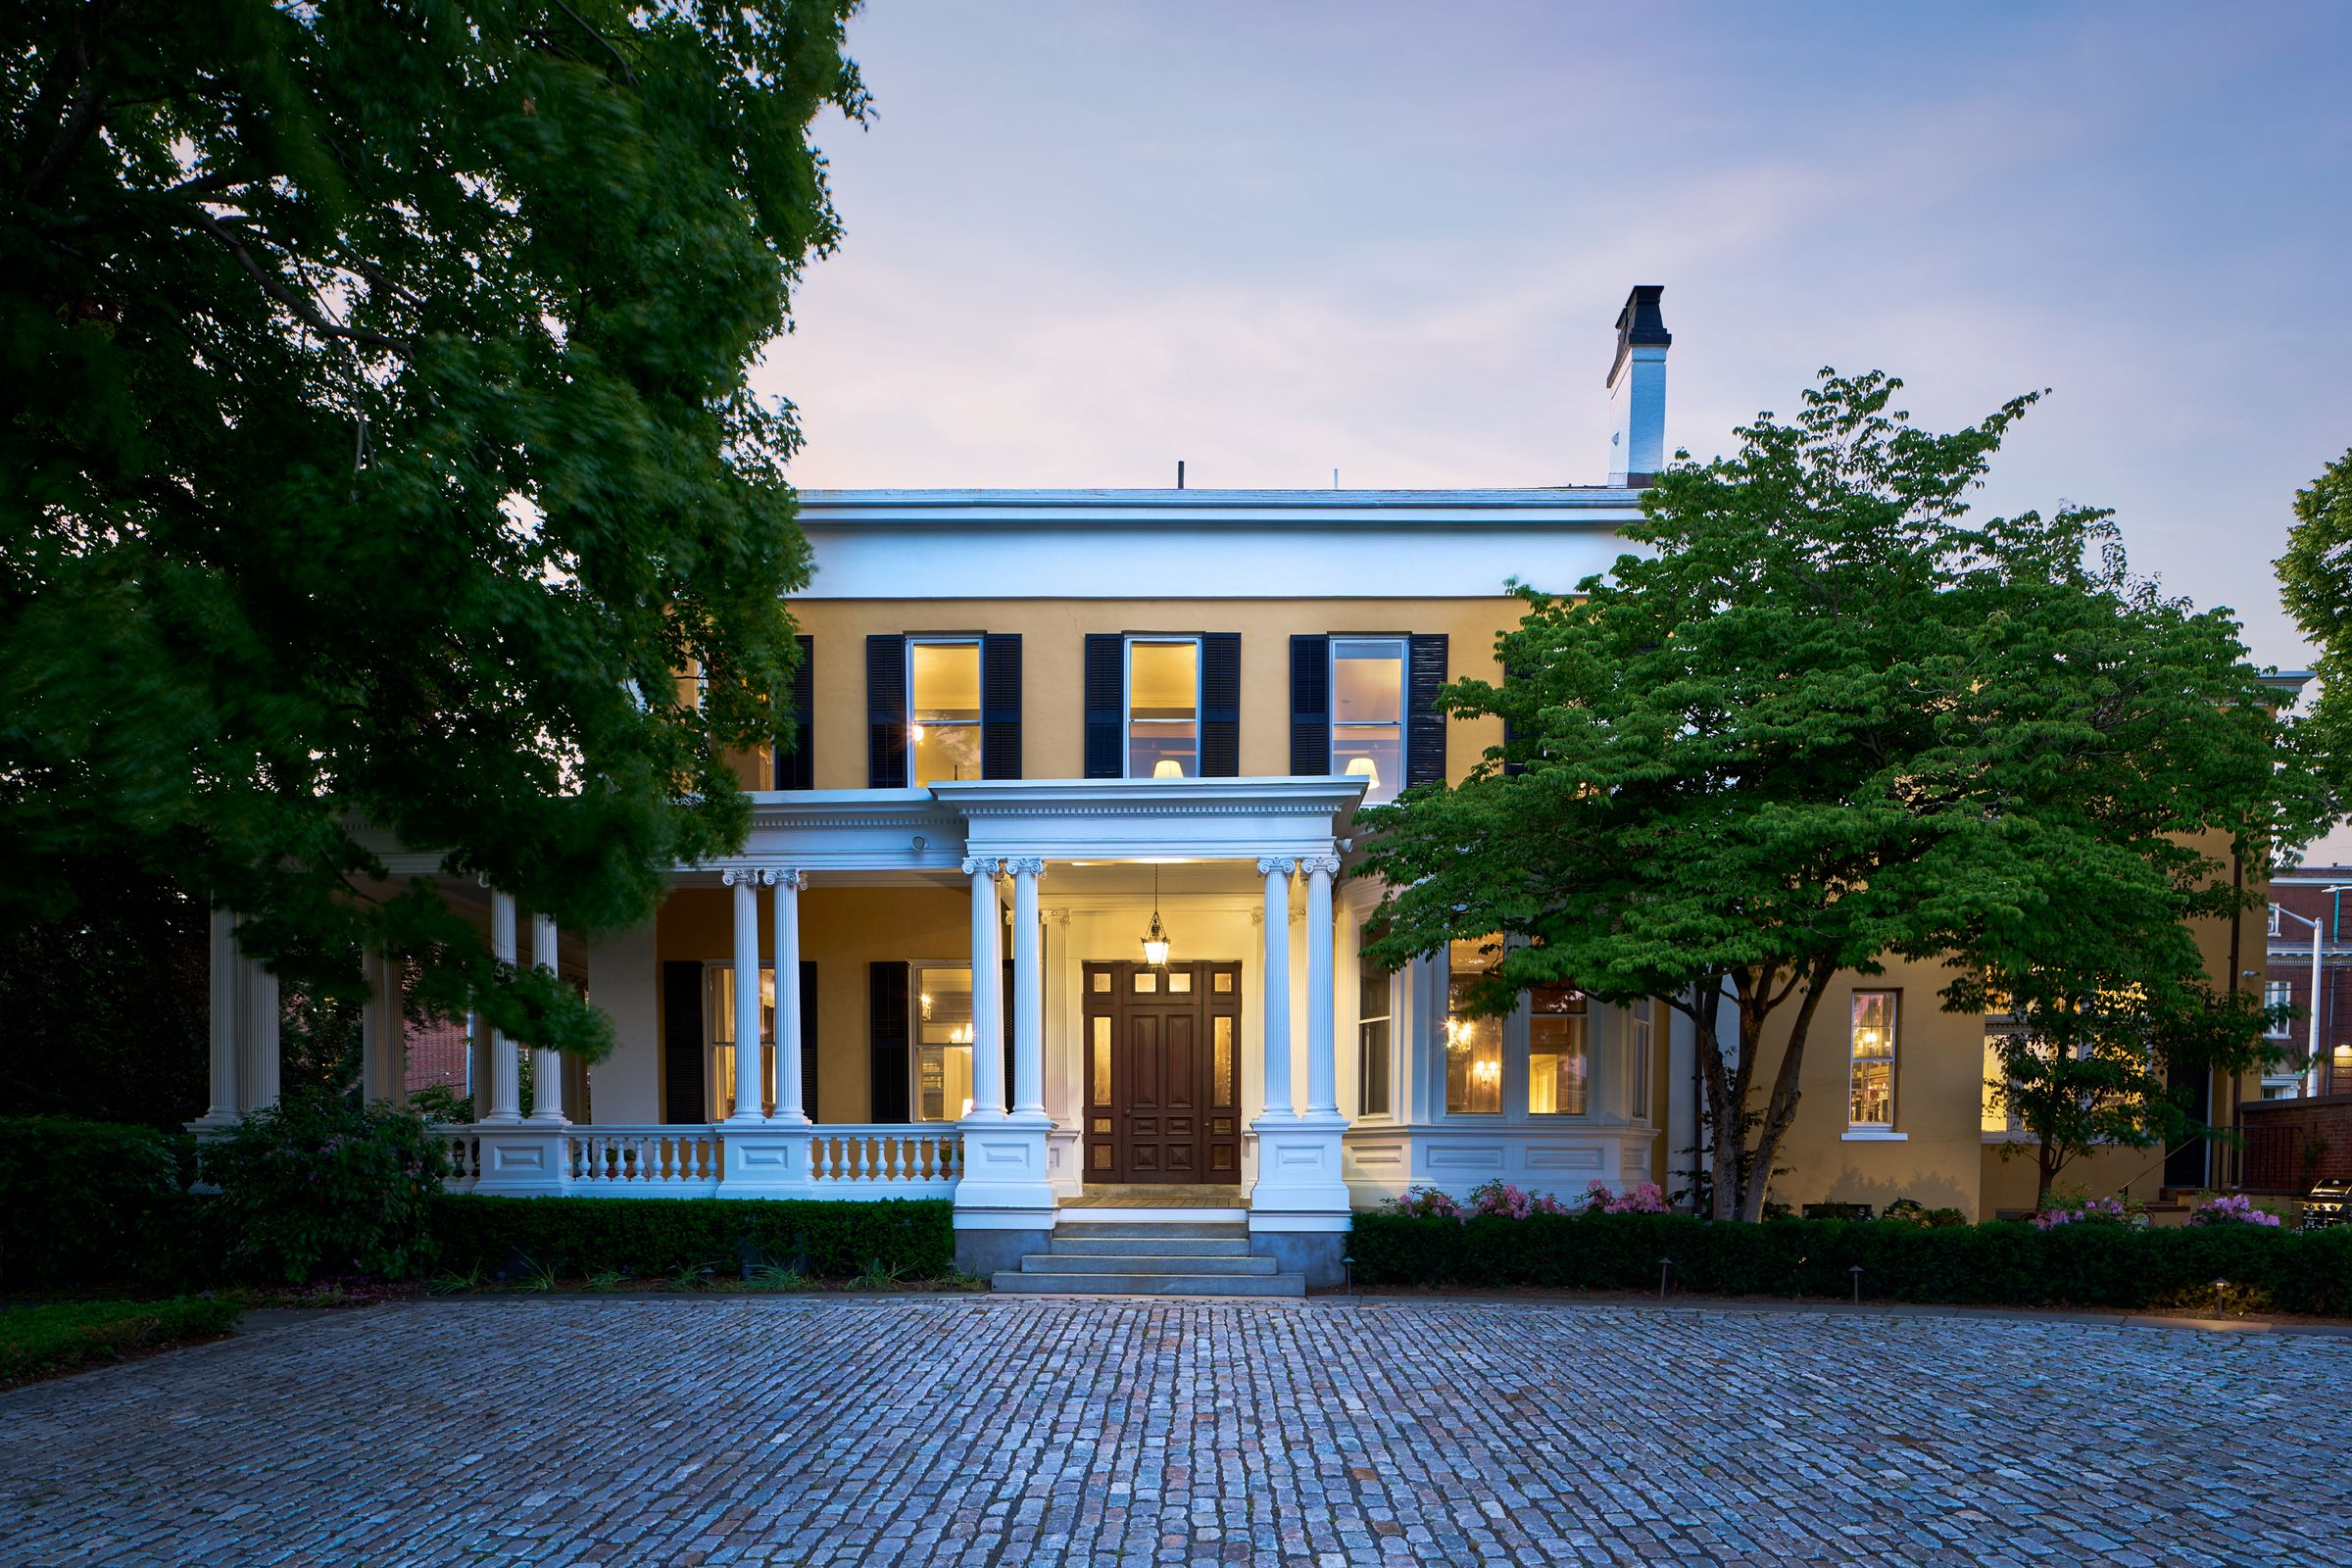 House Lust: Inside the Moses Brown Ives House, one of the Priciest Properties in the City